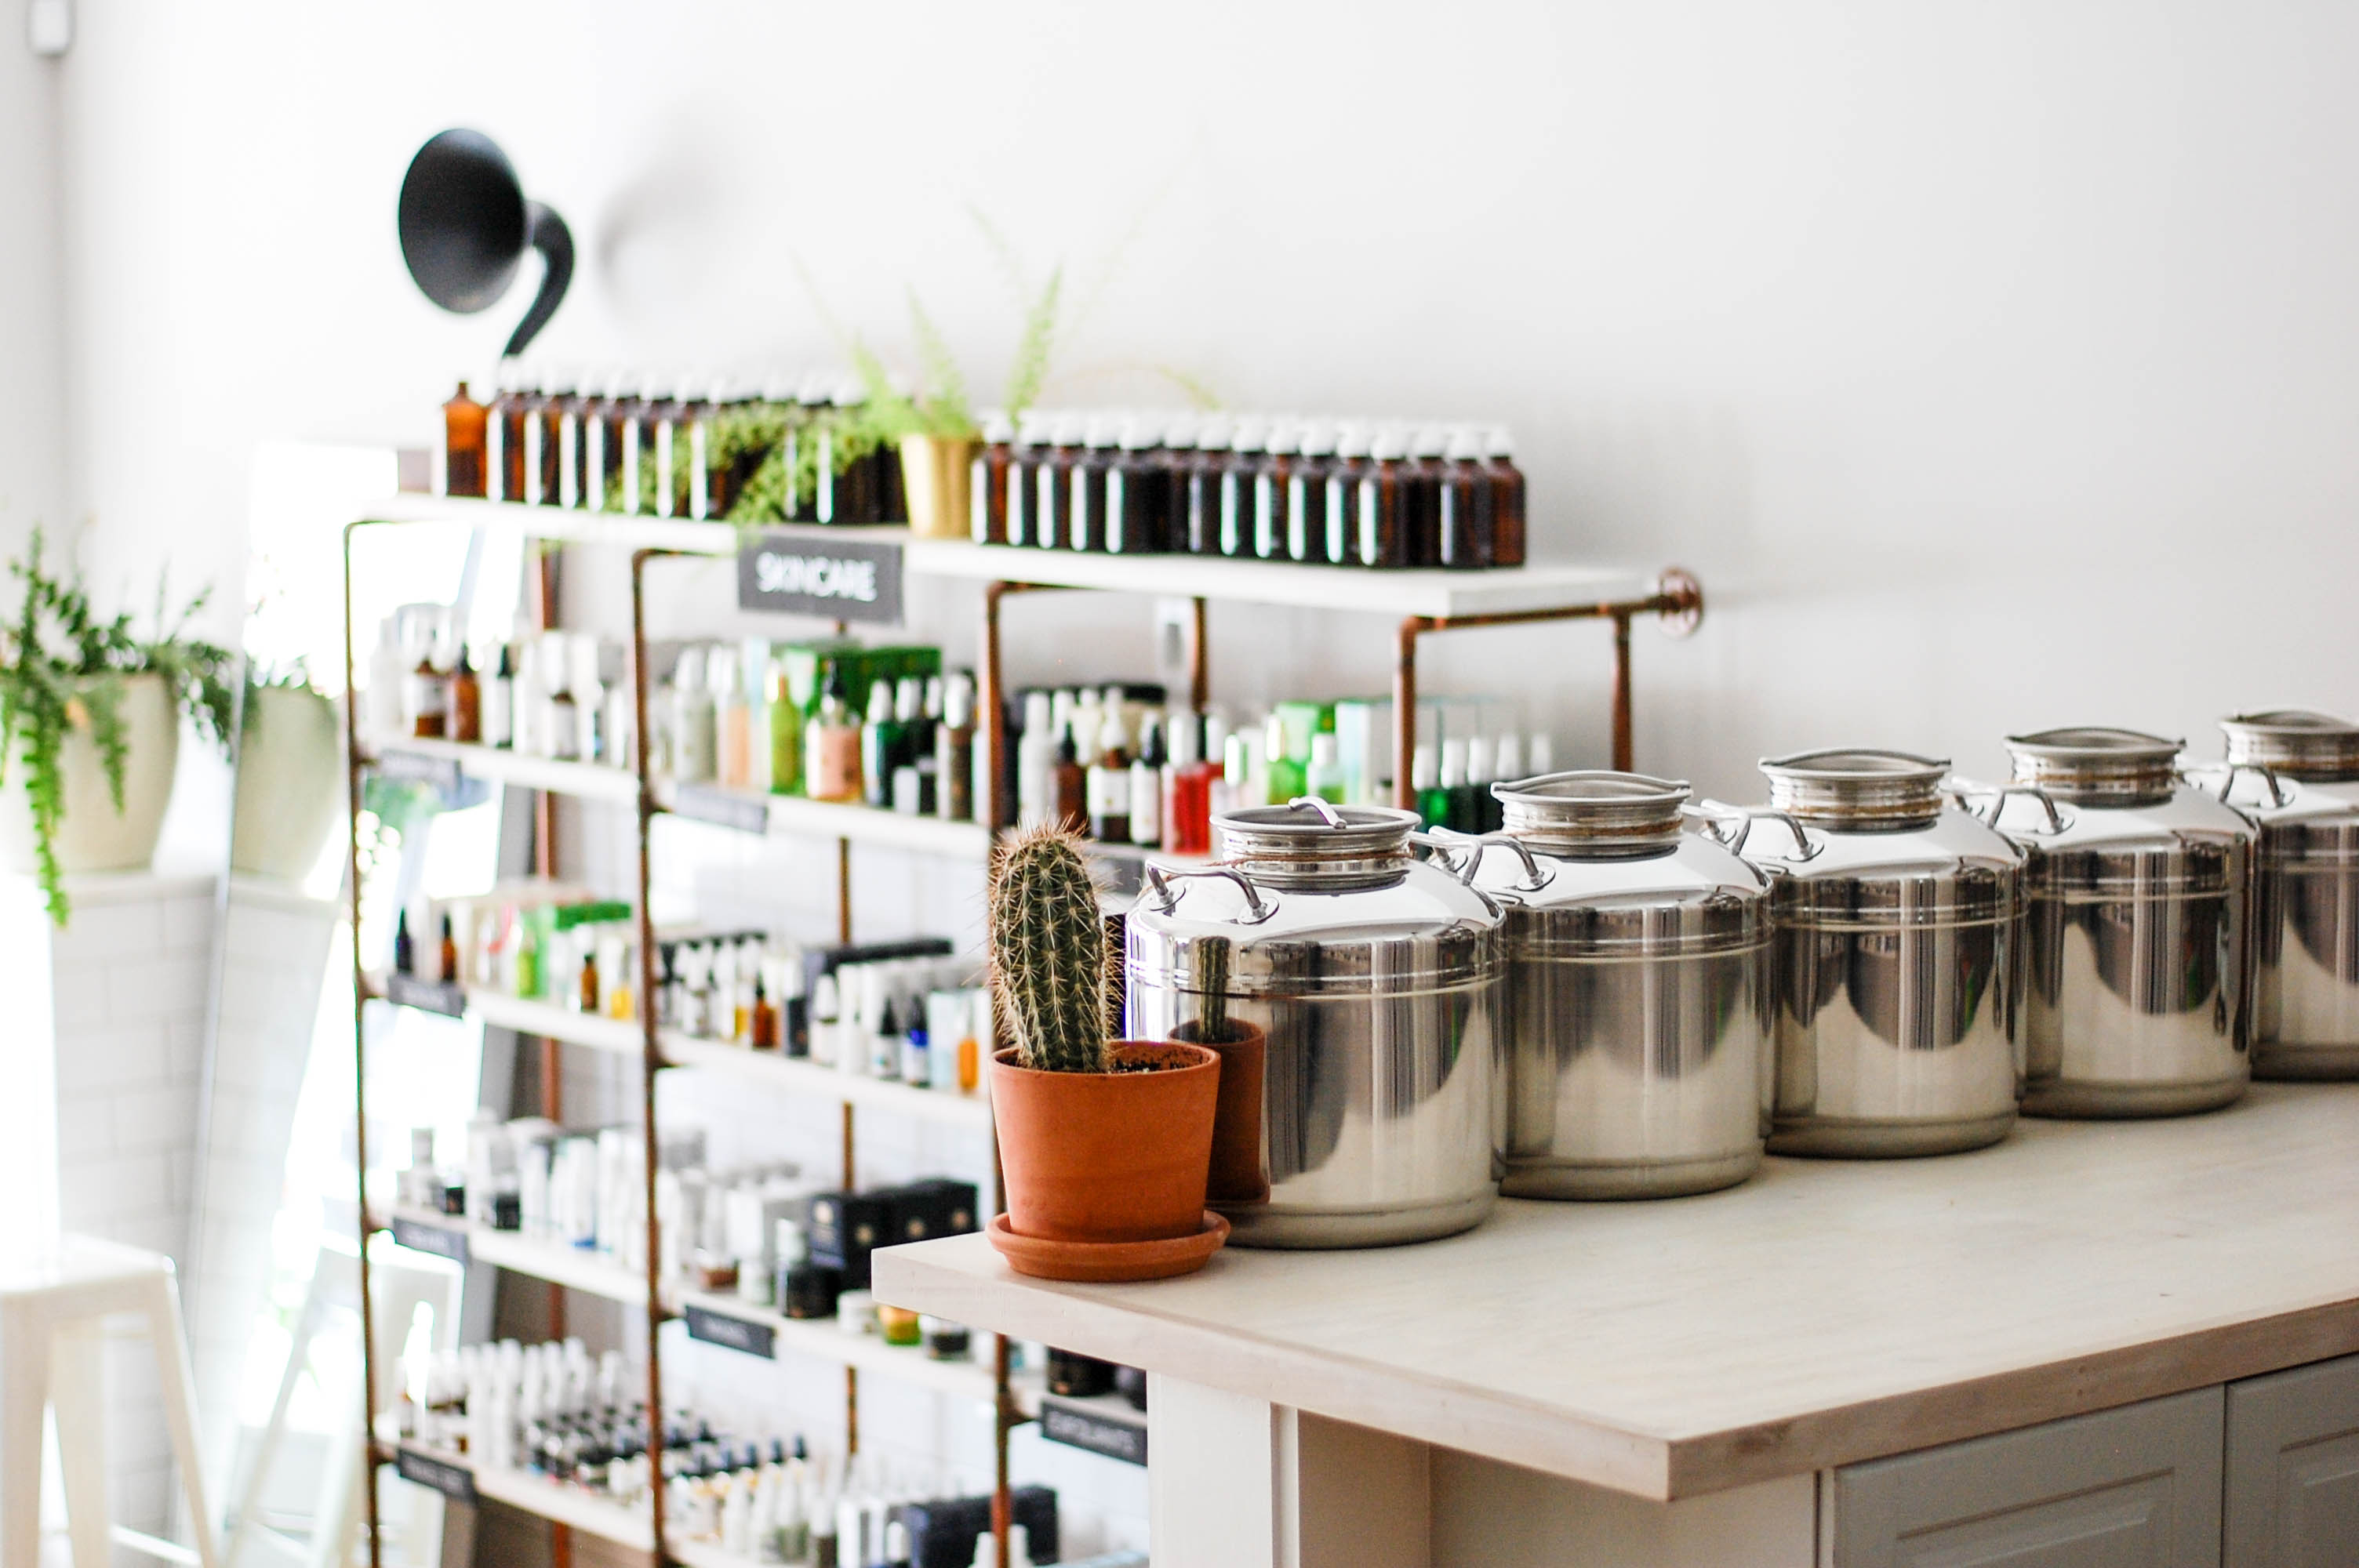 Clean beauty skincare routine products at Follian in Boston